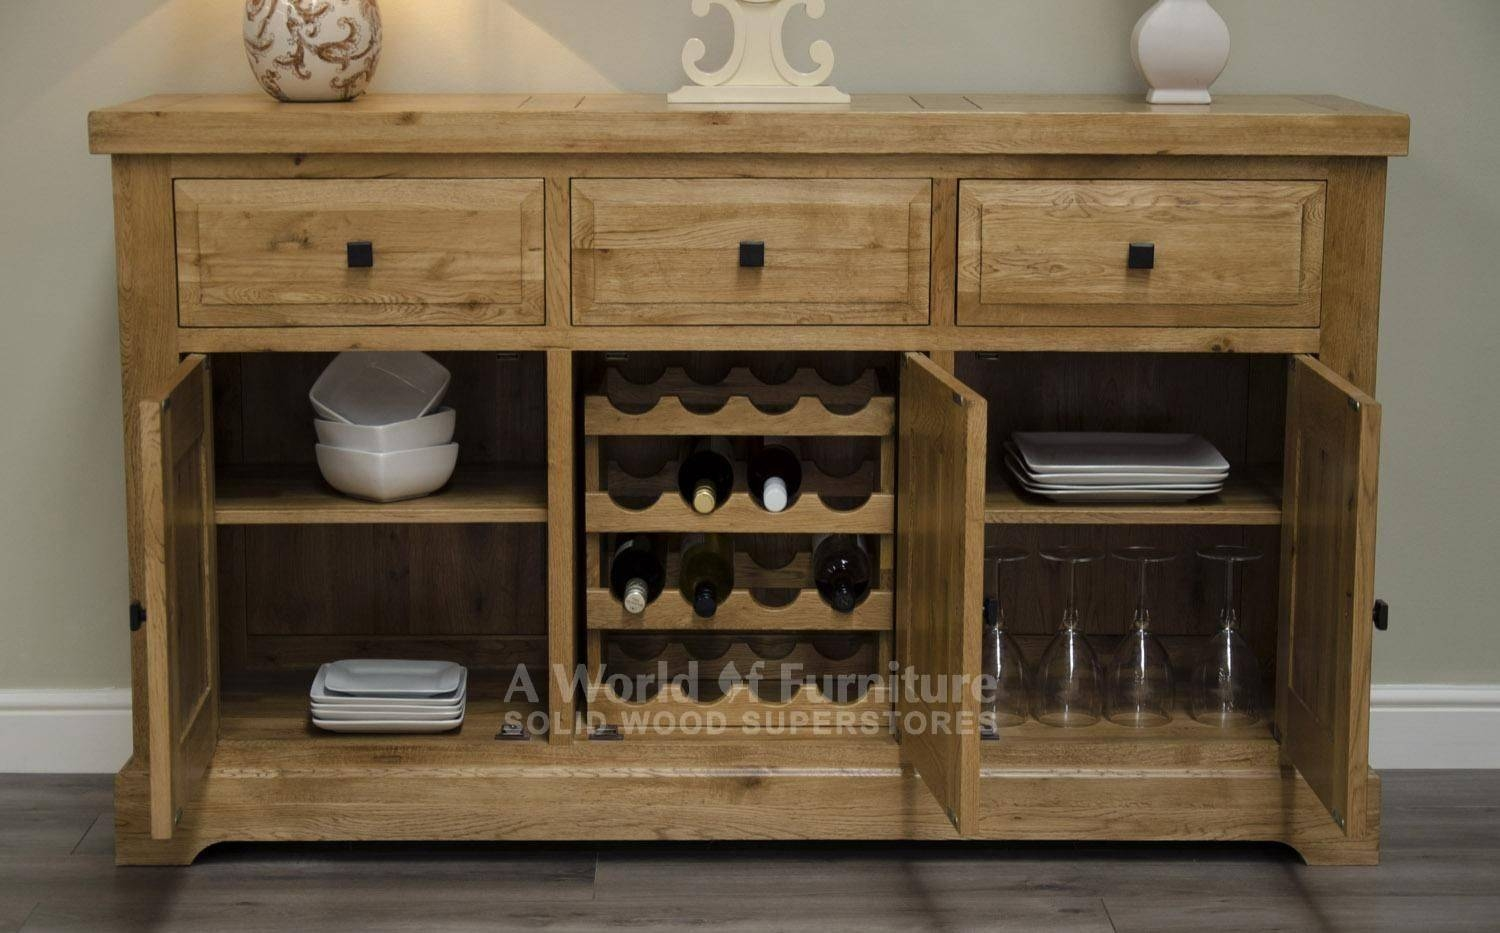 Rustic Deluxe 3 Door Sideboard With Internal Wine Rack | A World pertaining to Oak Sideboards With Wine Rack (Image 14 of 30)